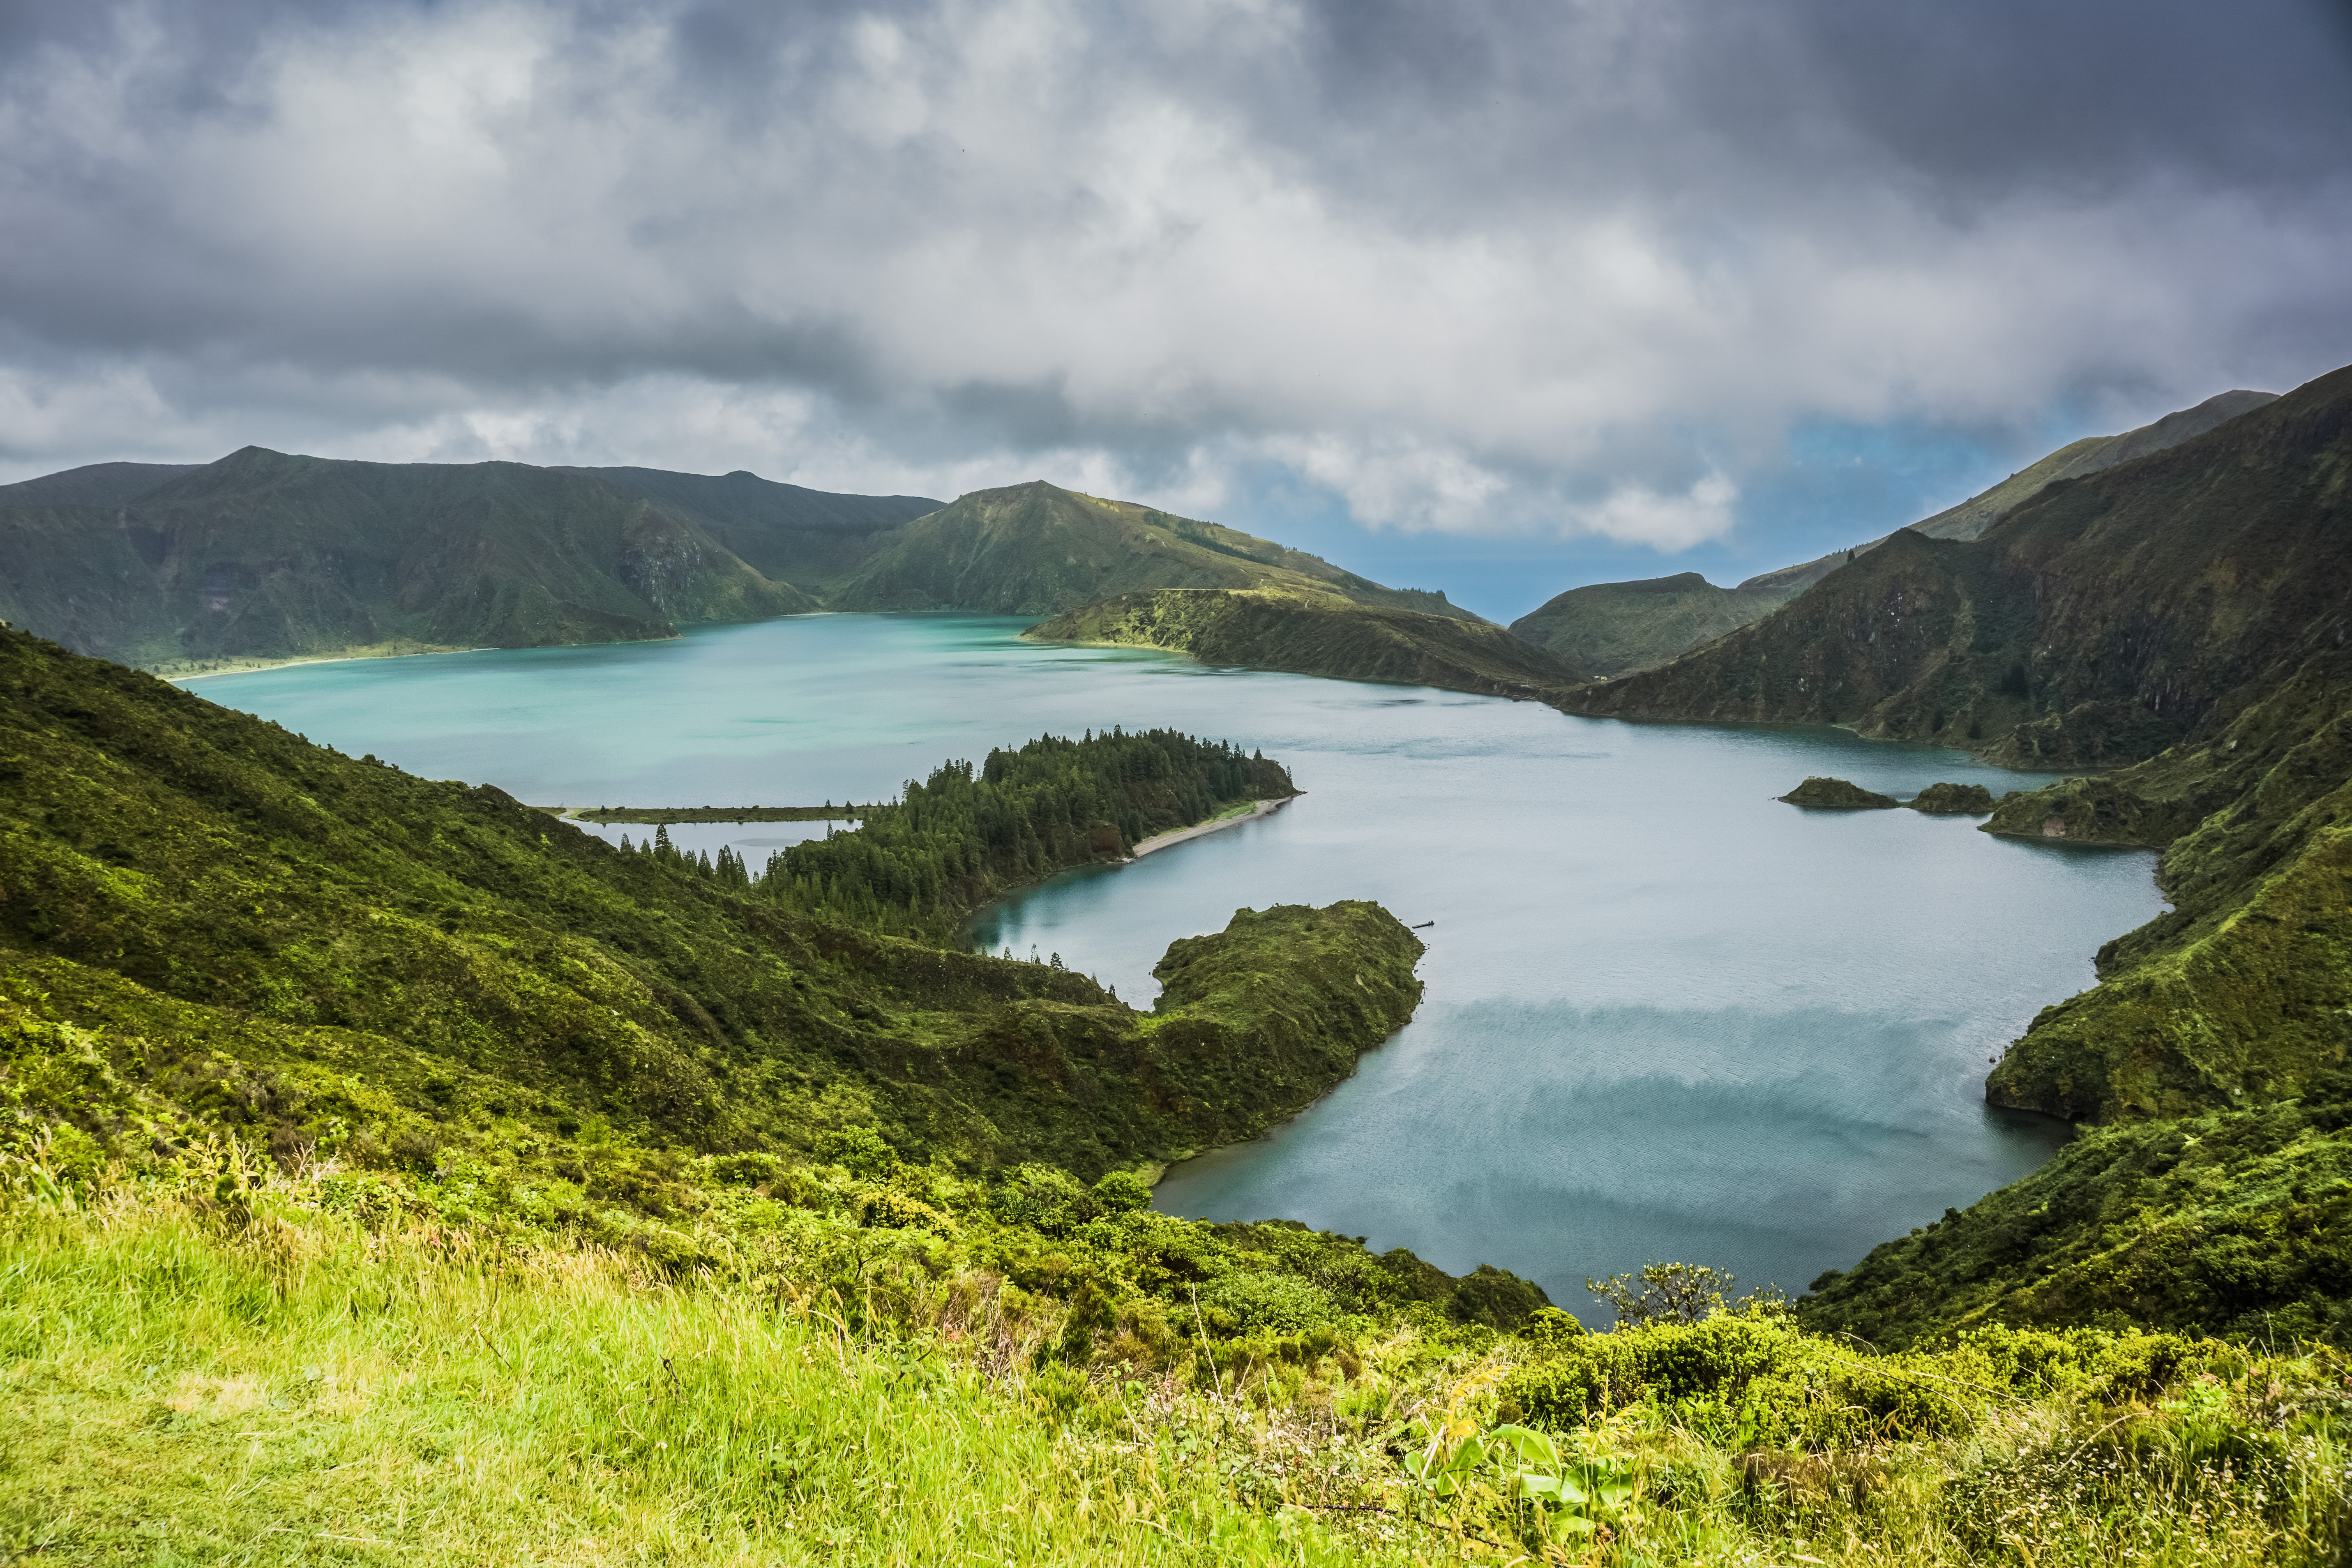 Lagoa do Fogo (Lake of Fire) on a cloudy day on Sao Miguel Island, Azores, Portugal.